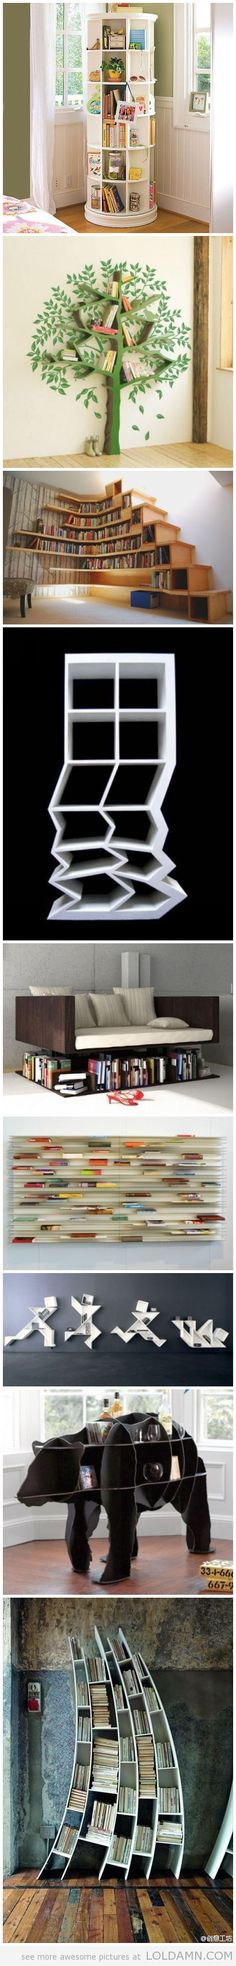 Awesome Bookcases!